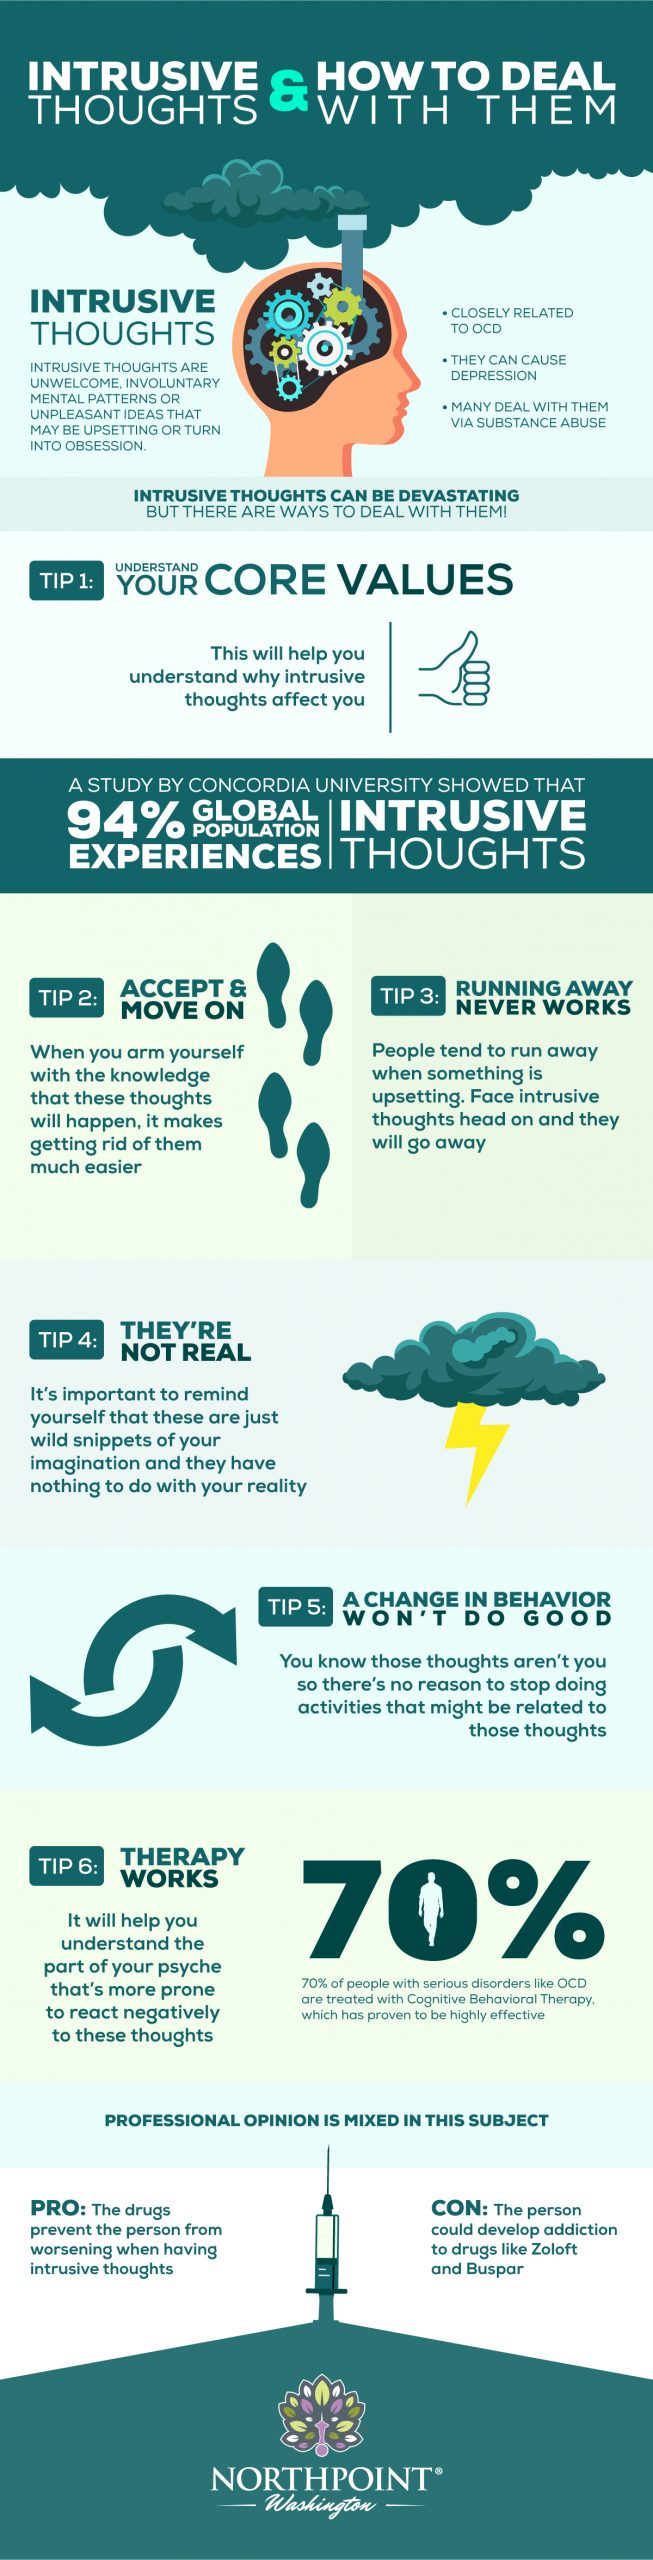 An infographic discussing Intrusive Thoughts and How to Deal with Them.